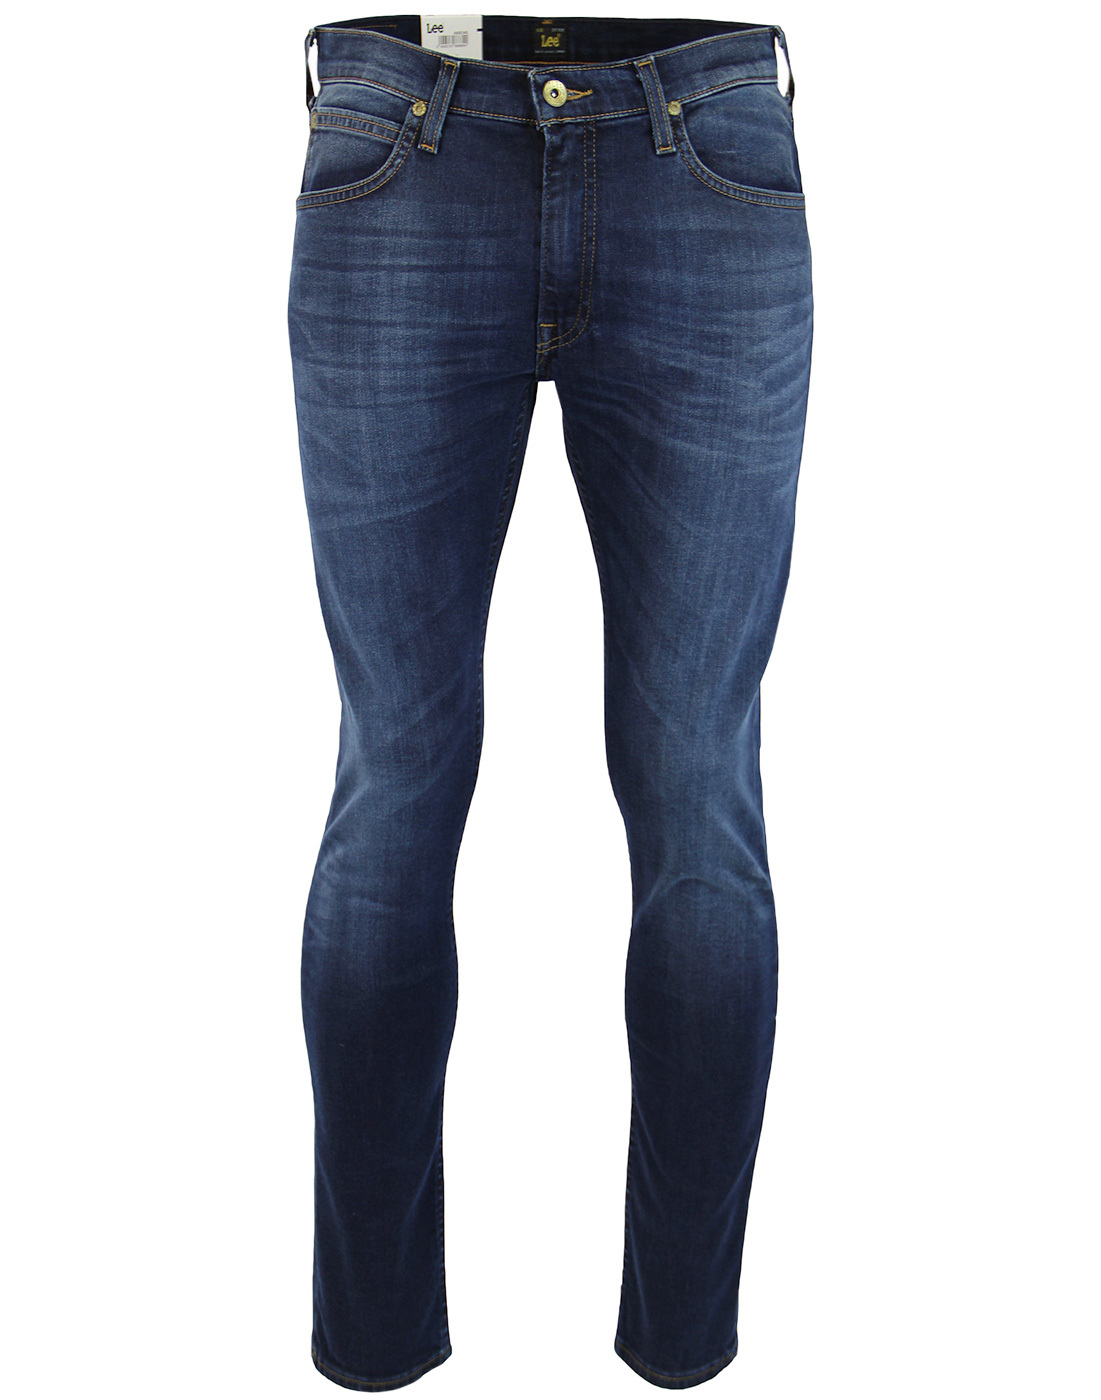 ad459ae4 Luke LEE Men's Retro Mod Slim True Authentic Denim Jeans